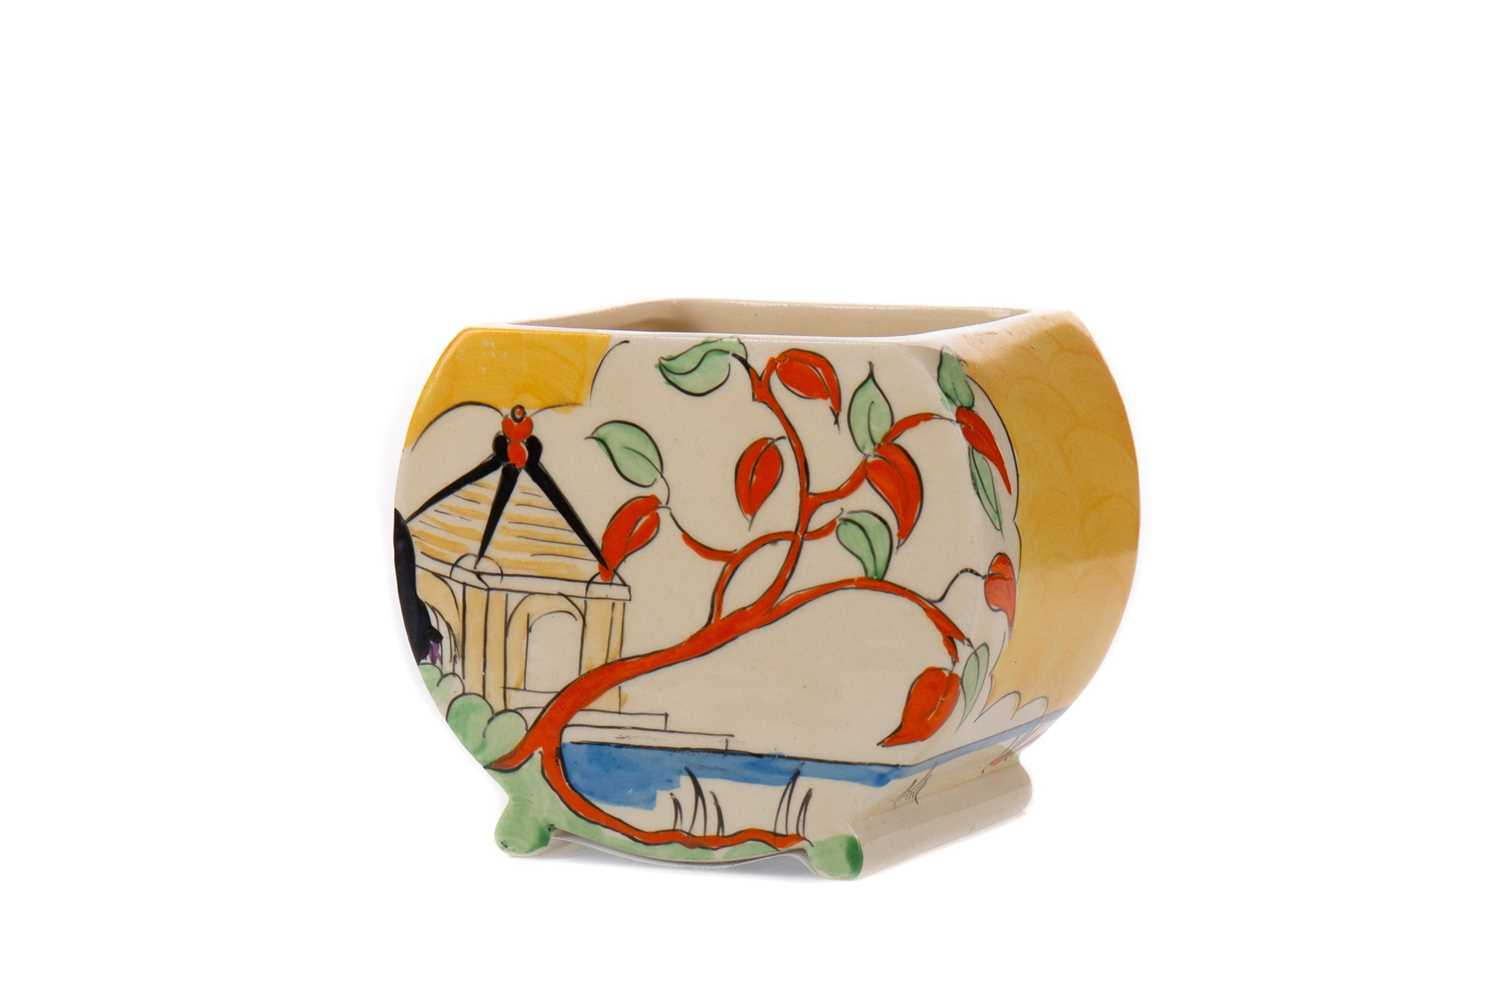 Lot 1006 - A CLARICE CLIFF 'YELLOW JAPAN' PATTERN SUGAR BOWL